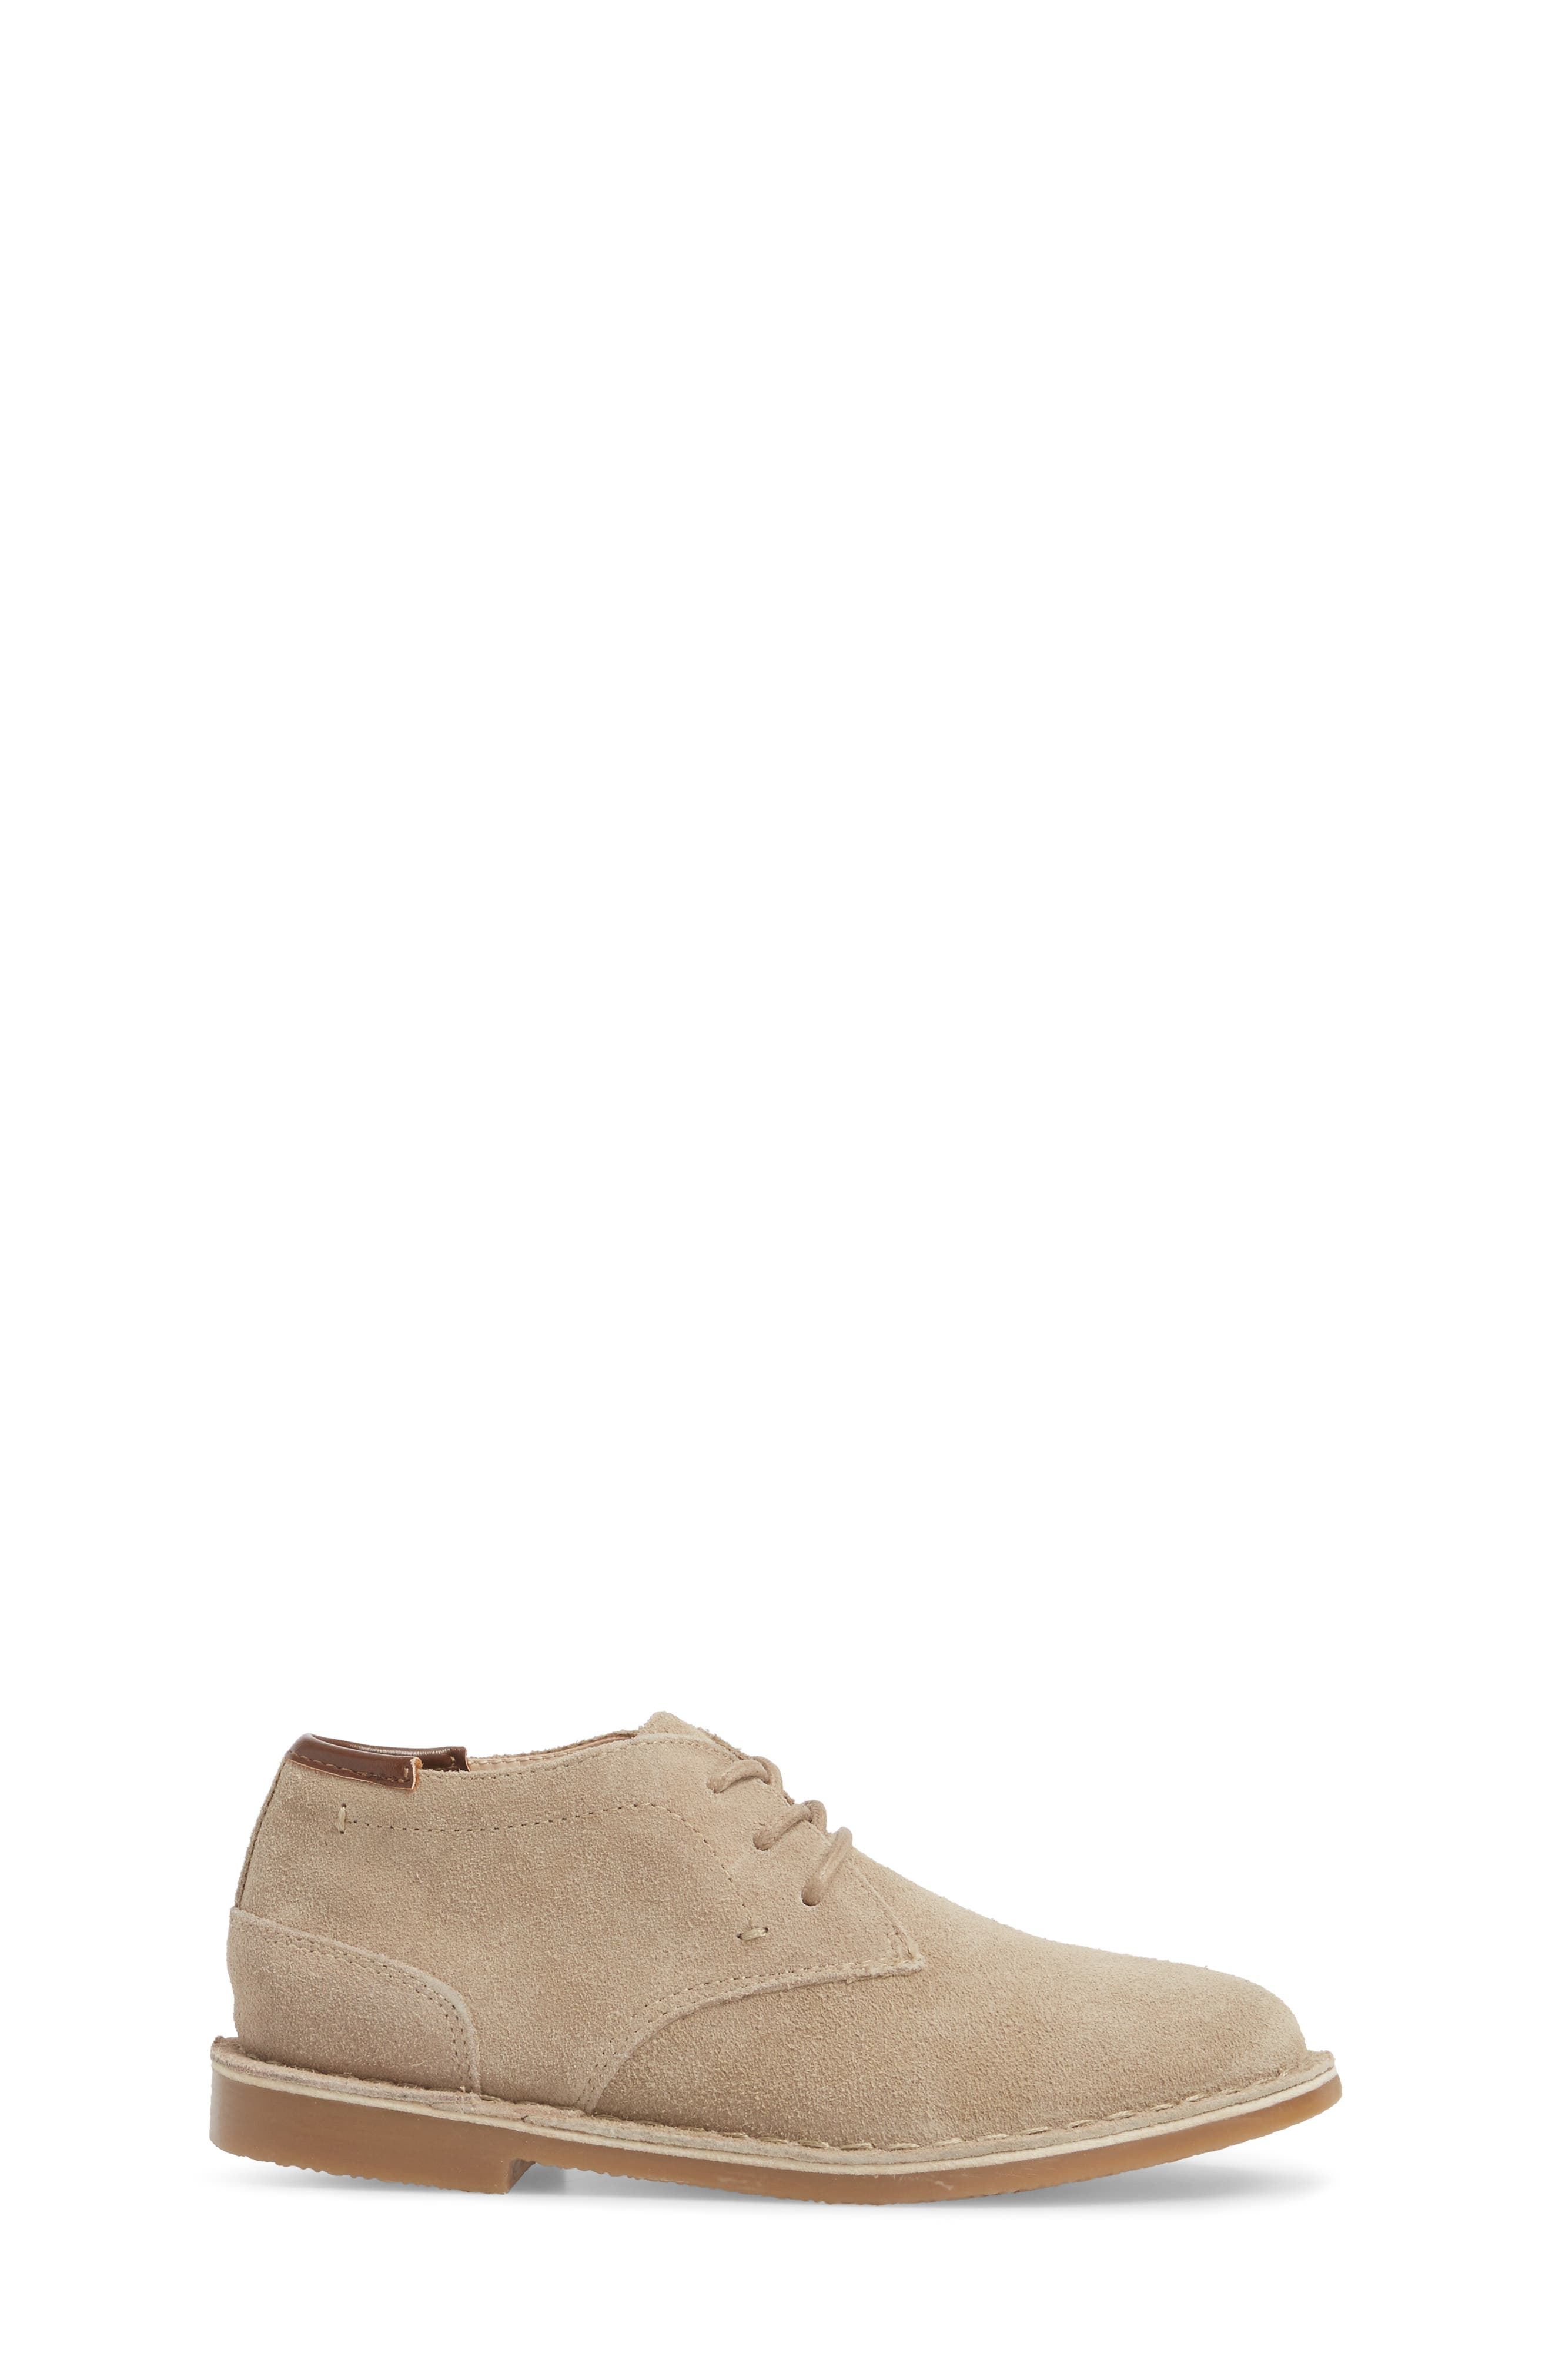 Alternate Image 3  - Kenneth Cole New York Real Deal Chukka Boot (Walker, Toddler, Little Kid & Big Kid)